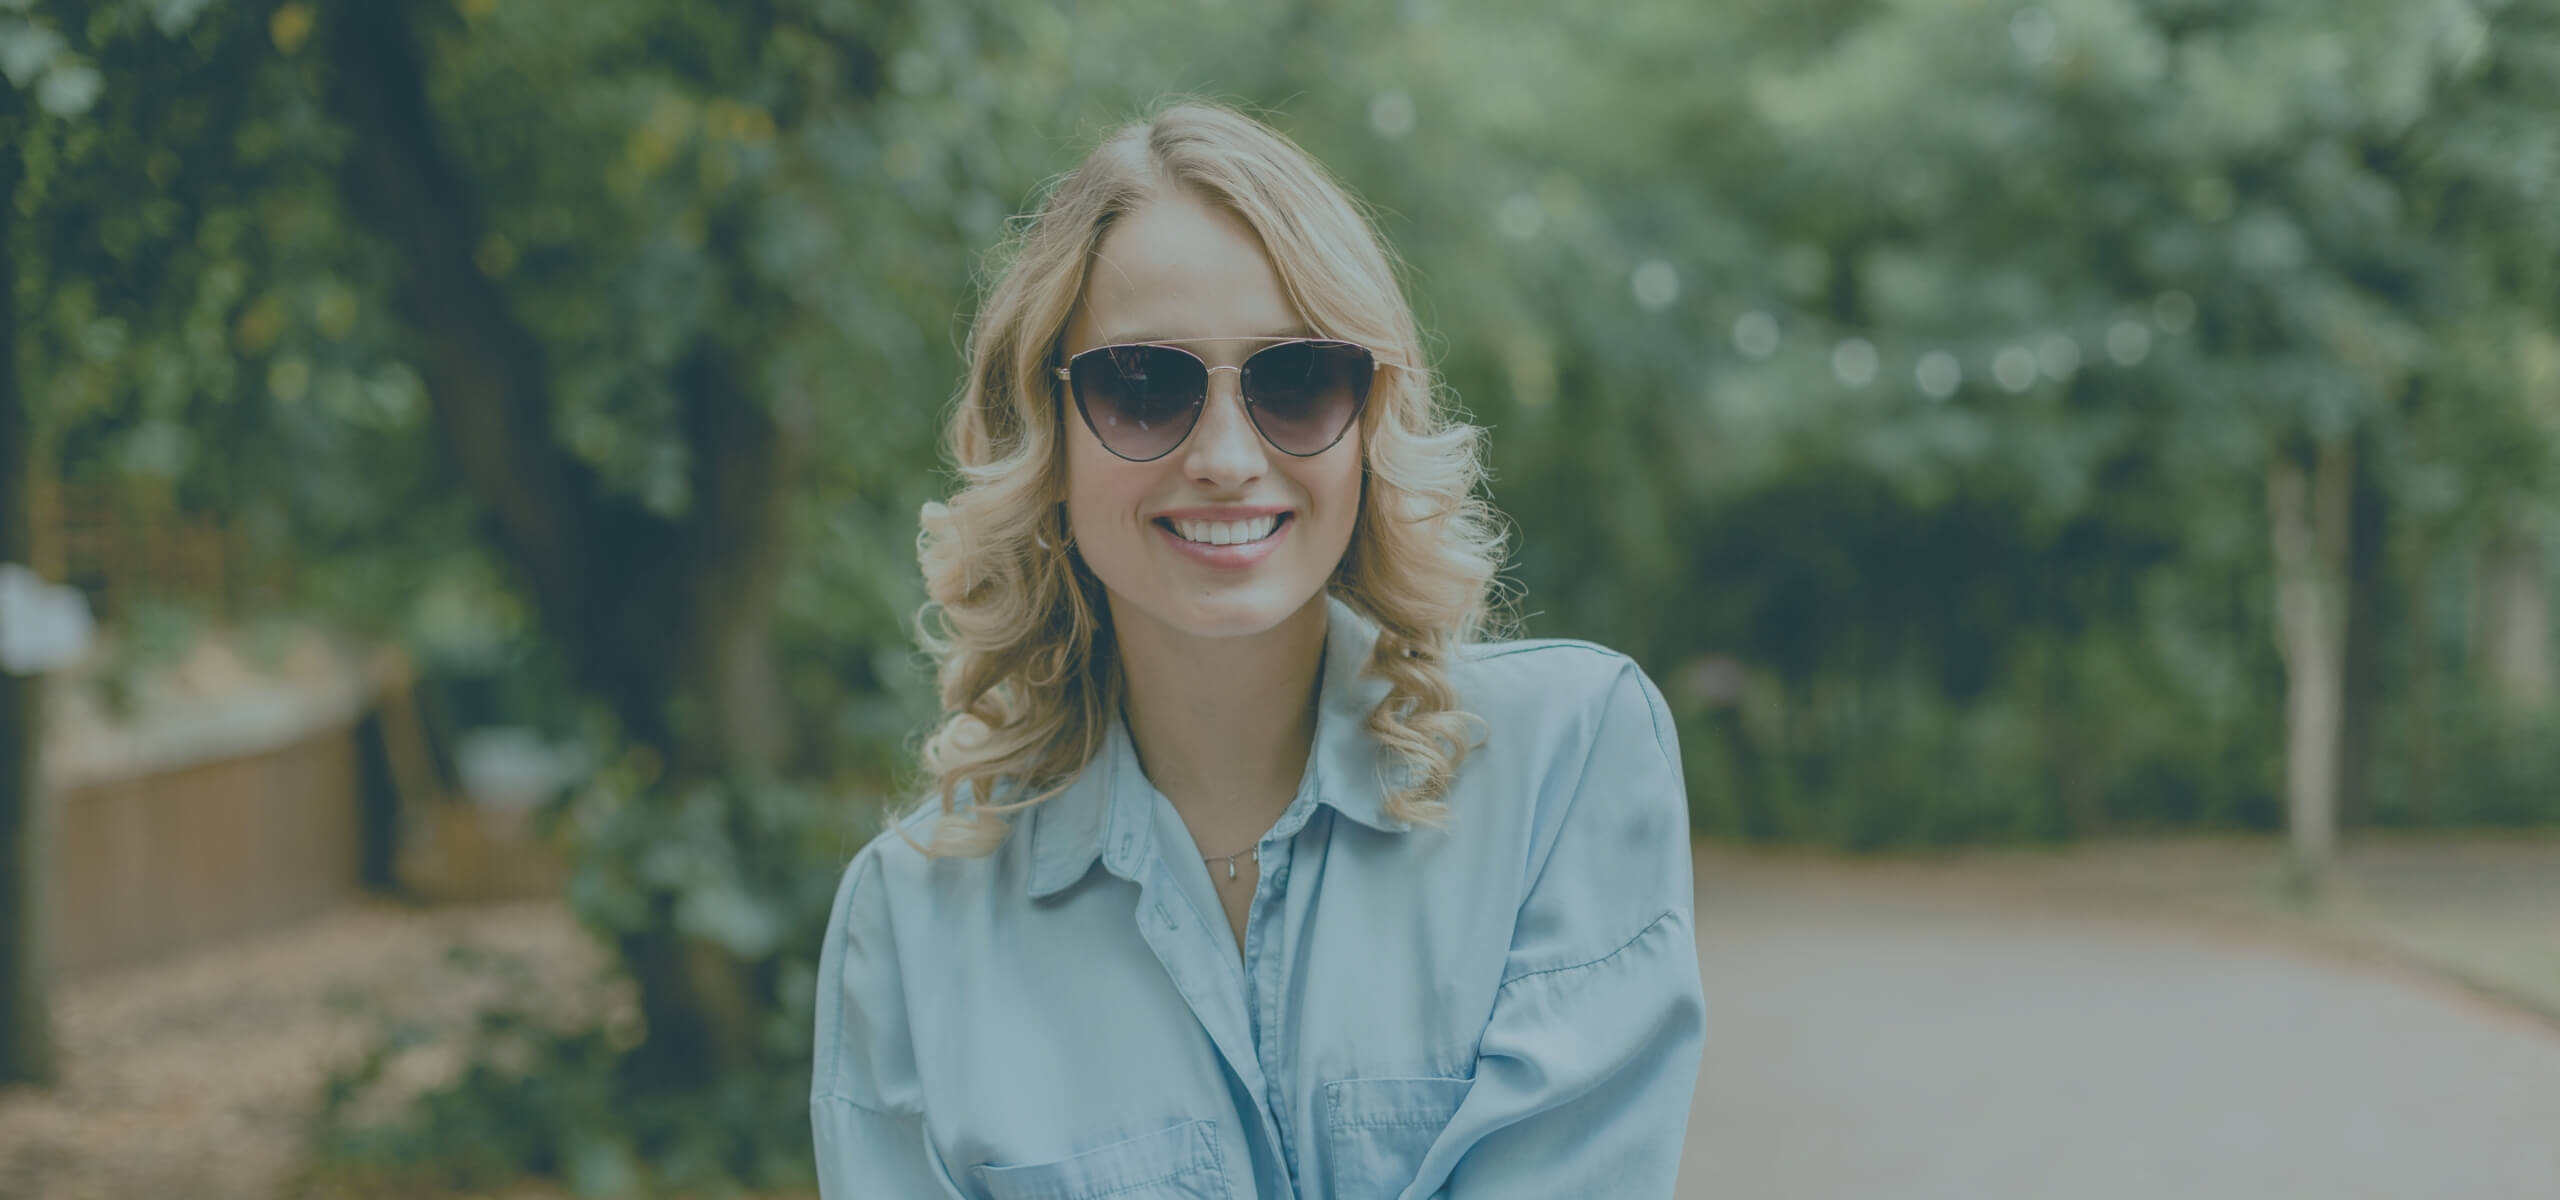 Smiling young woman wearing sunglasses